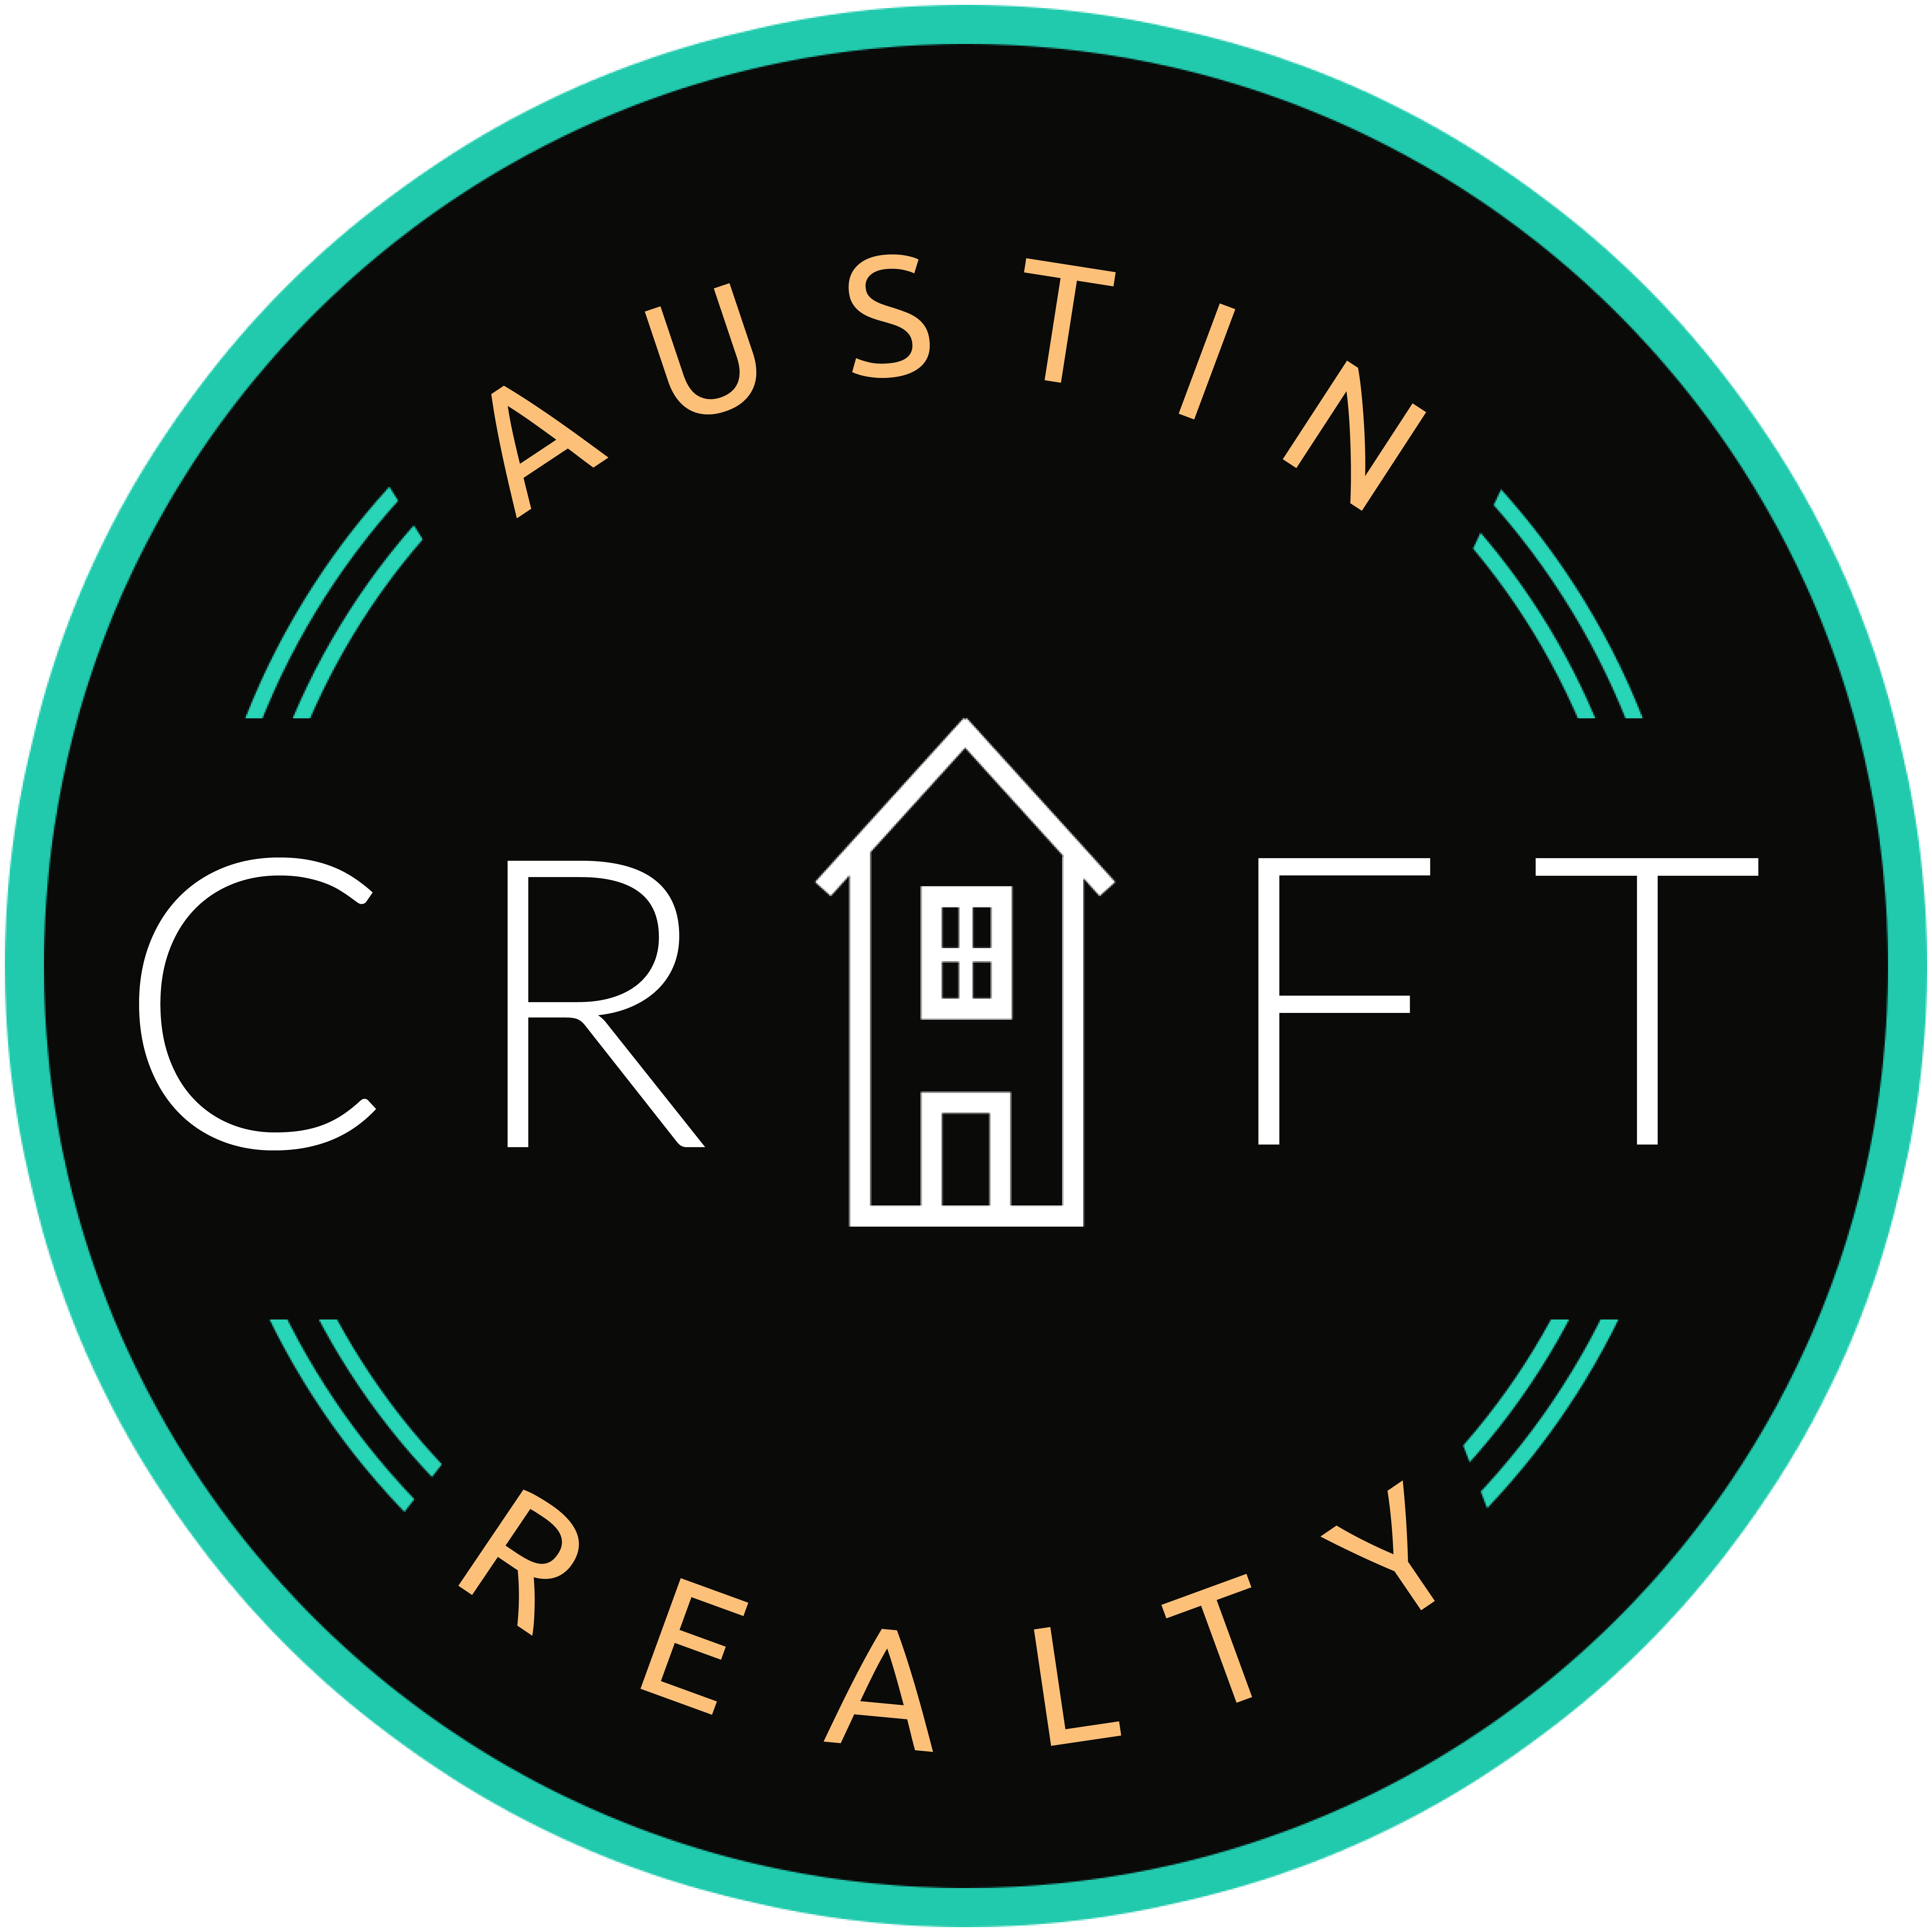 Austin Craft Realty